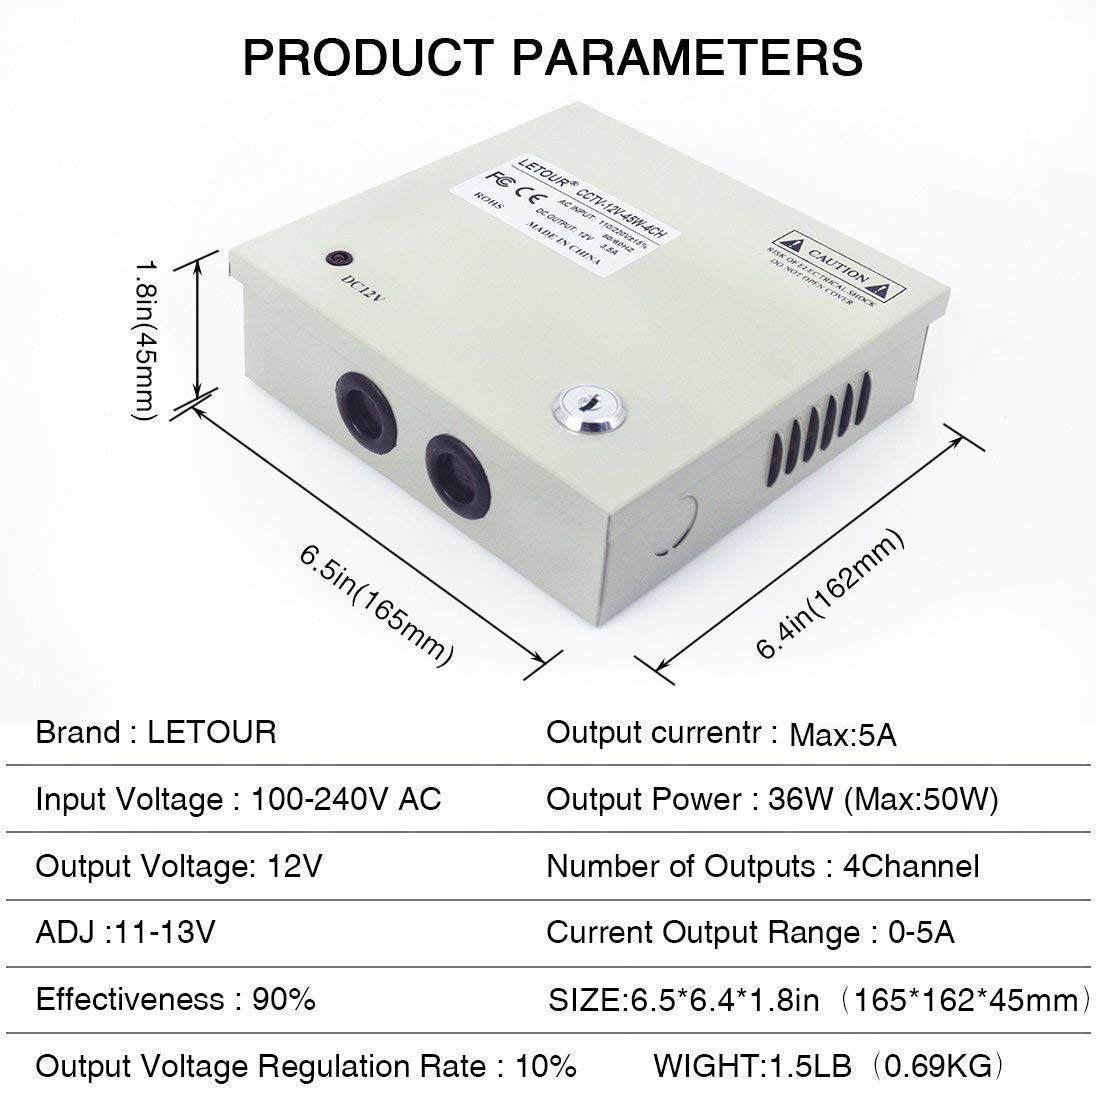 Cctv Power Supply 4ch Channel Port Box Letour 12v Wiring Diagram Distributed For Dvr Security System And Cameras Output 12v5a Maximum Home